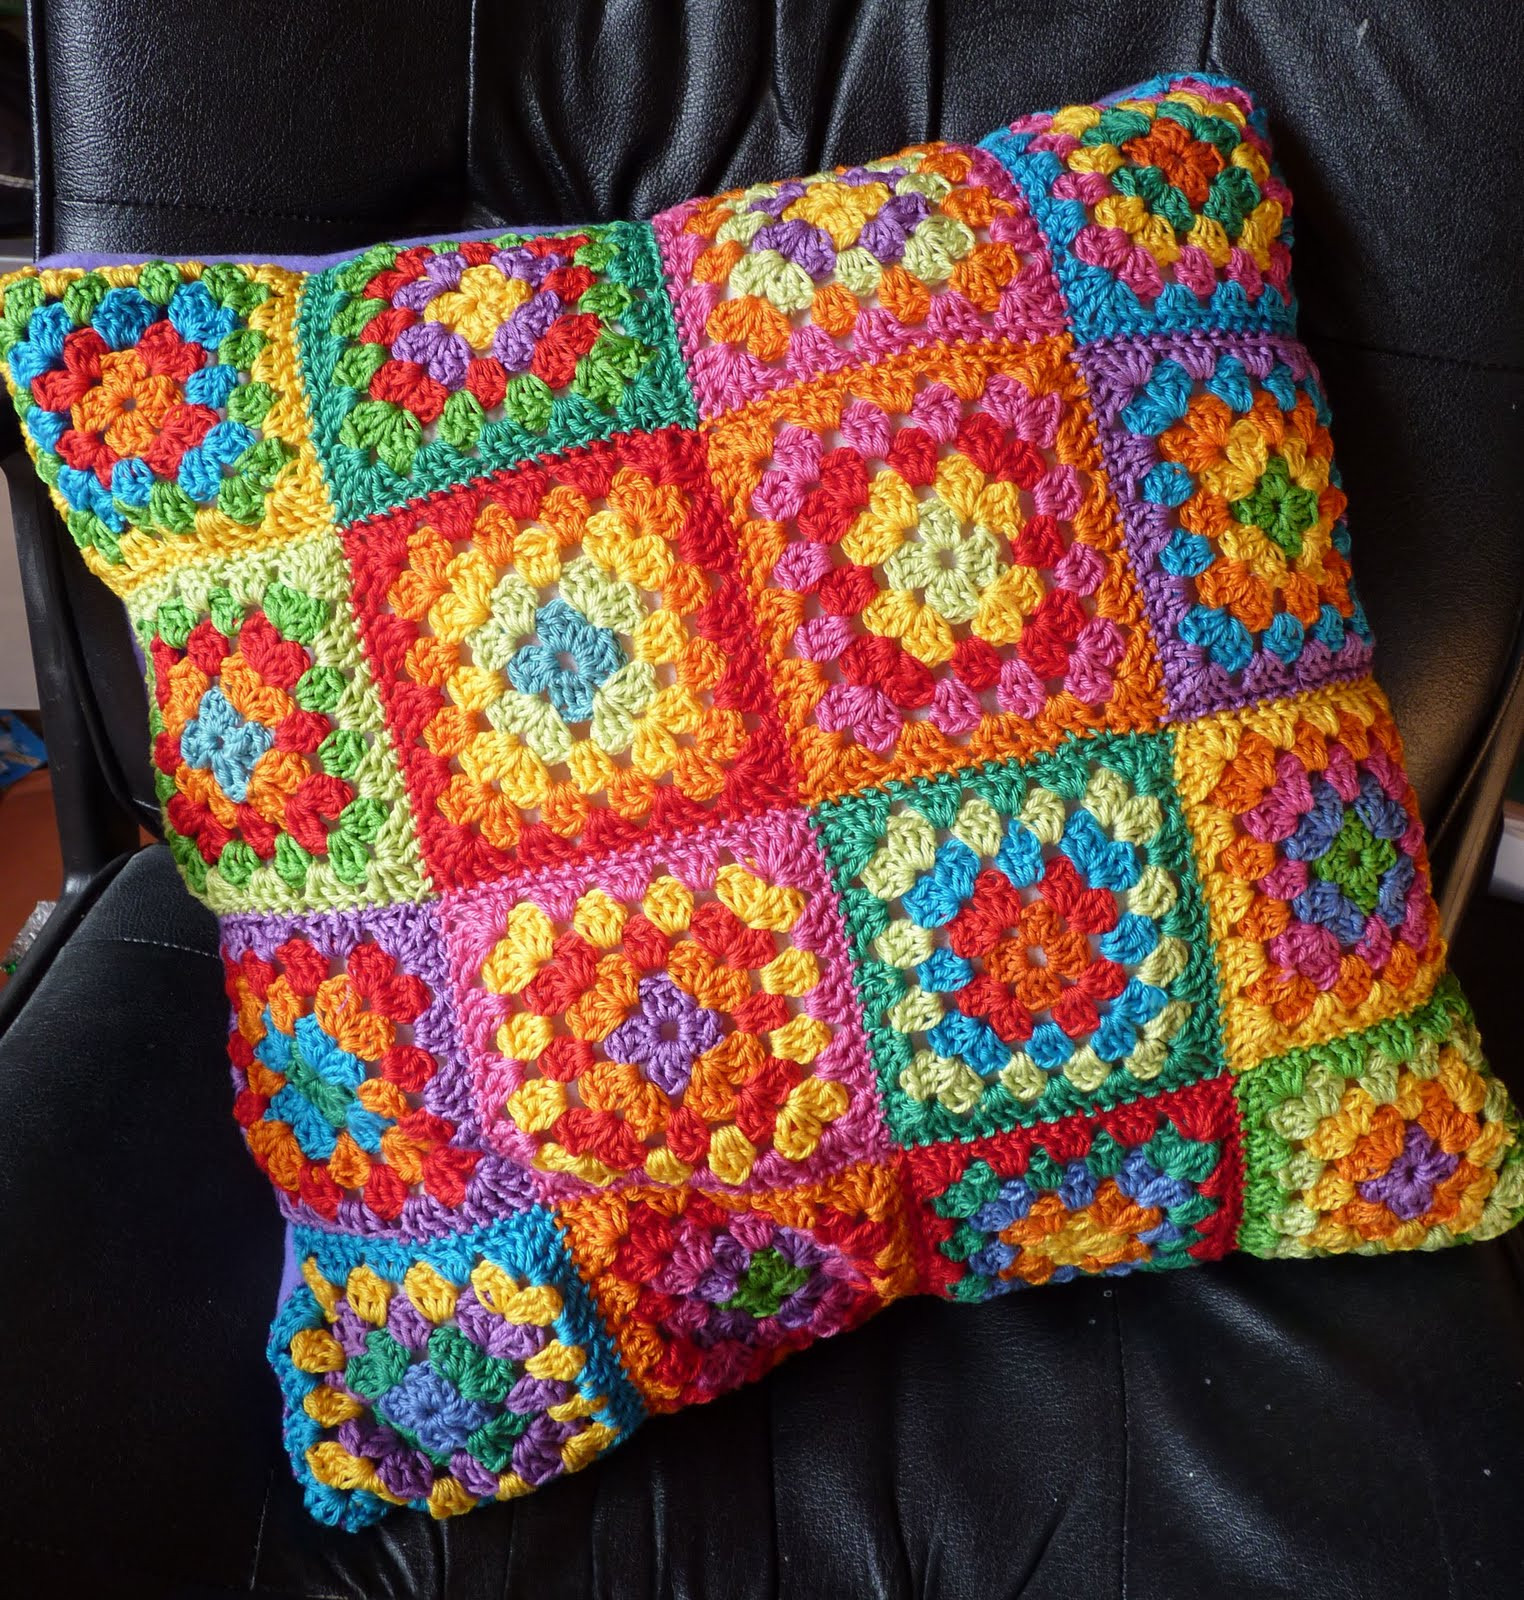 Crochet Pillow Cover Best Of the Adventures Of the Gingerbread Lady Tutorial Fleece Of Amazing 50 Pics Crochet Pillow Cover